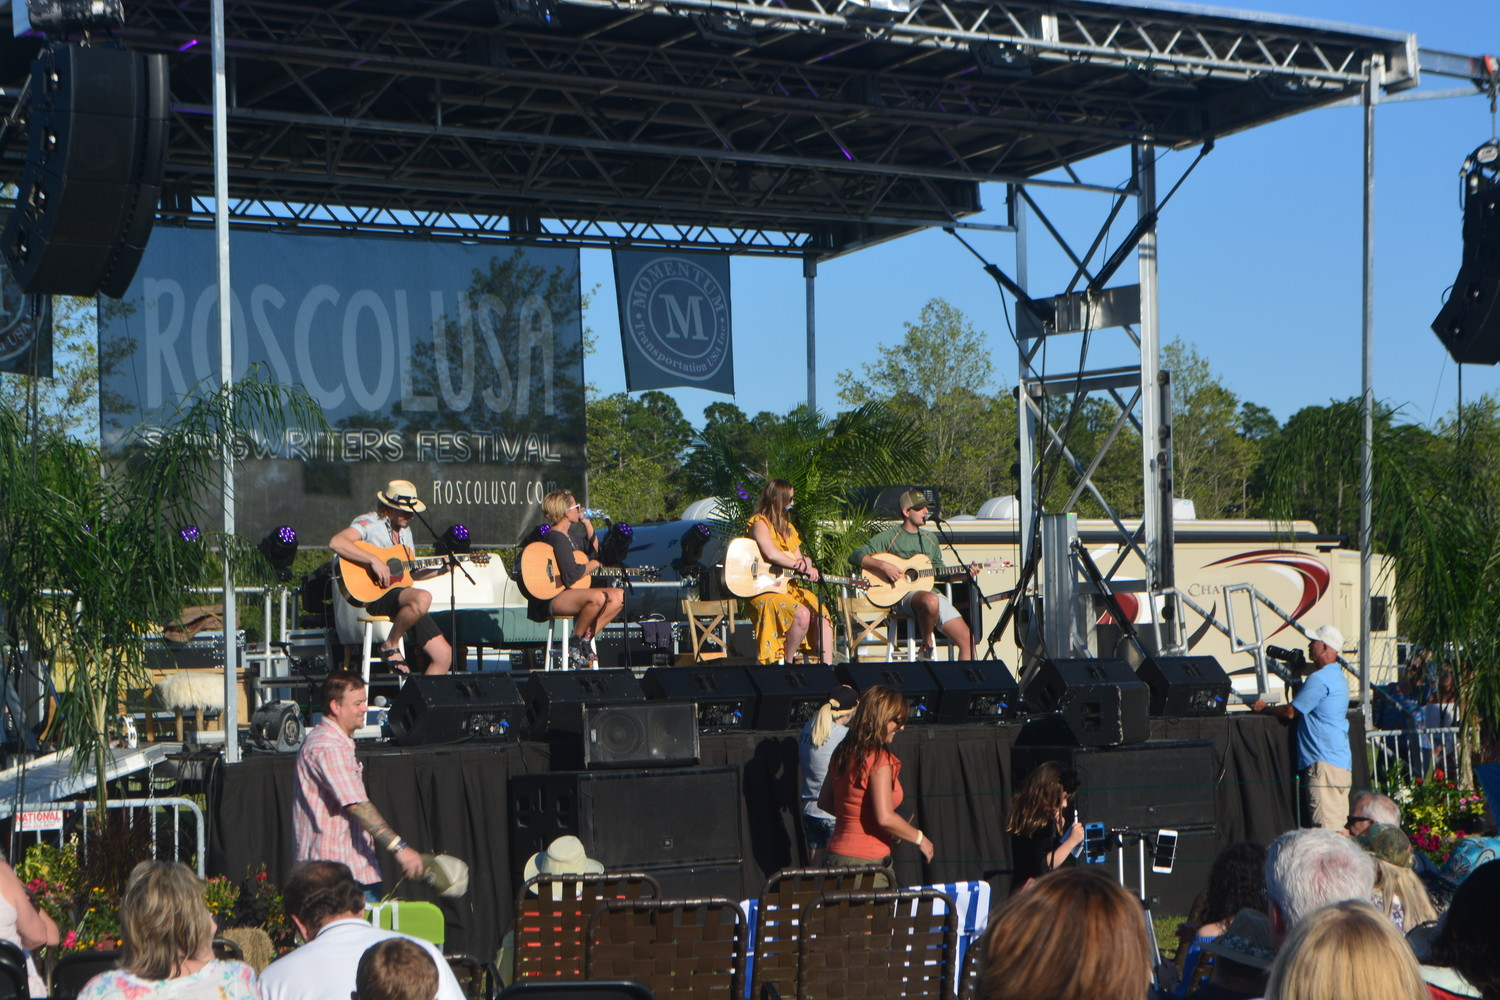 Songwriters share their stories and perform popular songs on-stage at the 2018 Roscolusa Songwriters Festival, held April 28 in Nocatee.